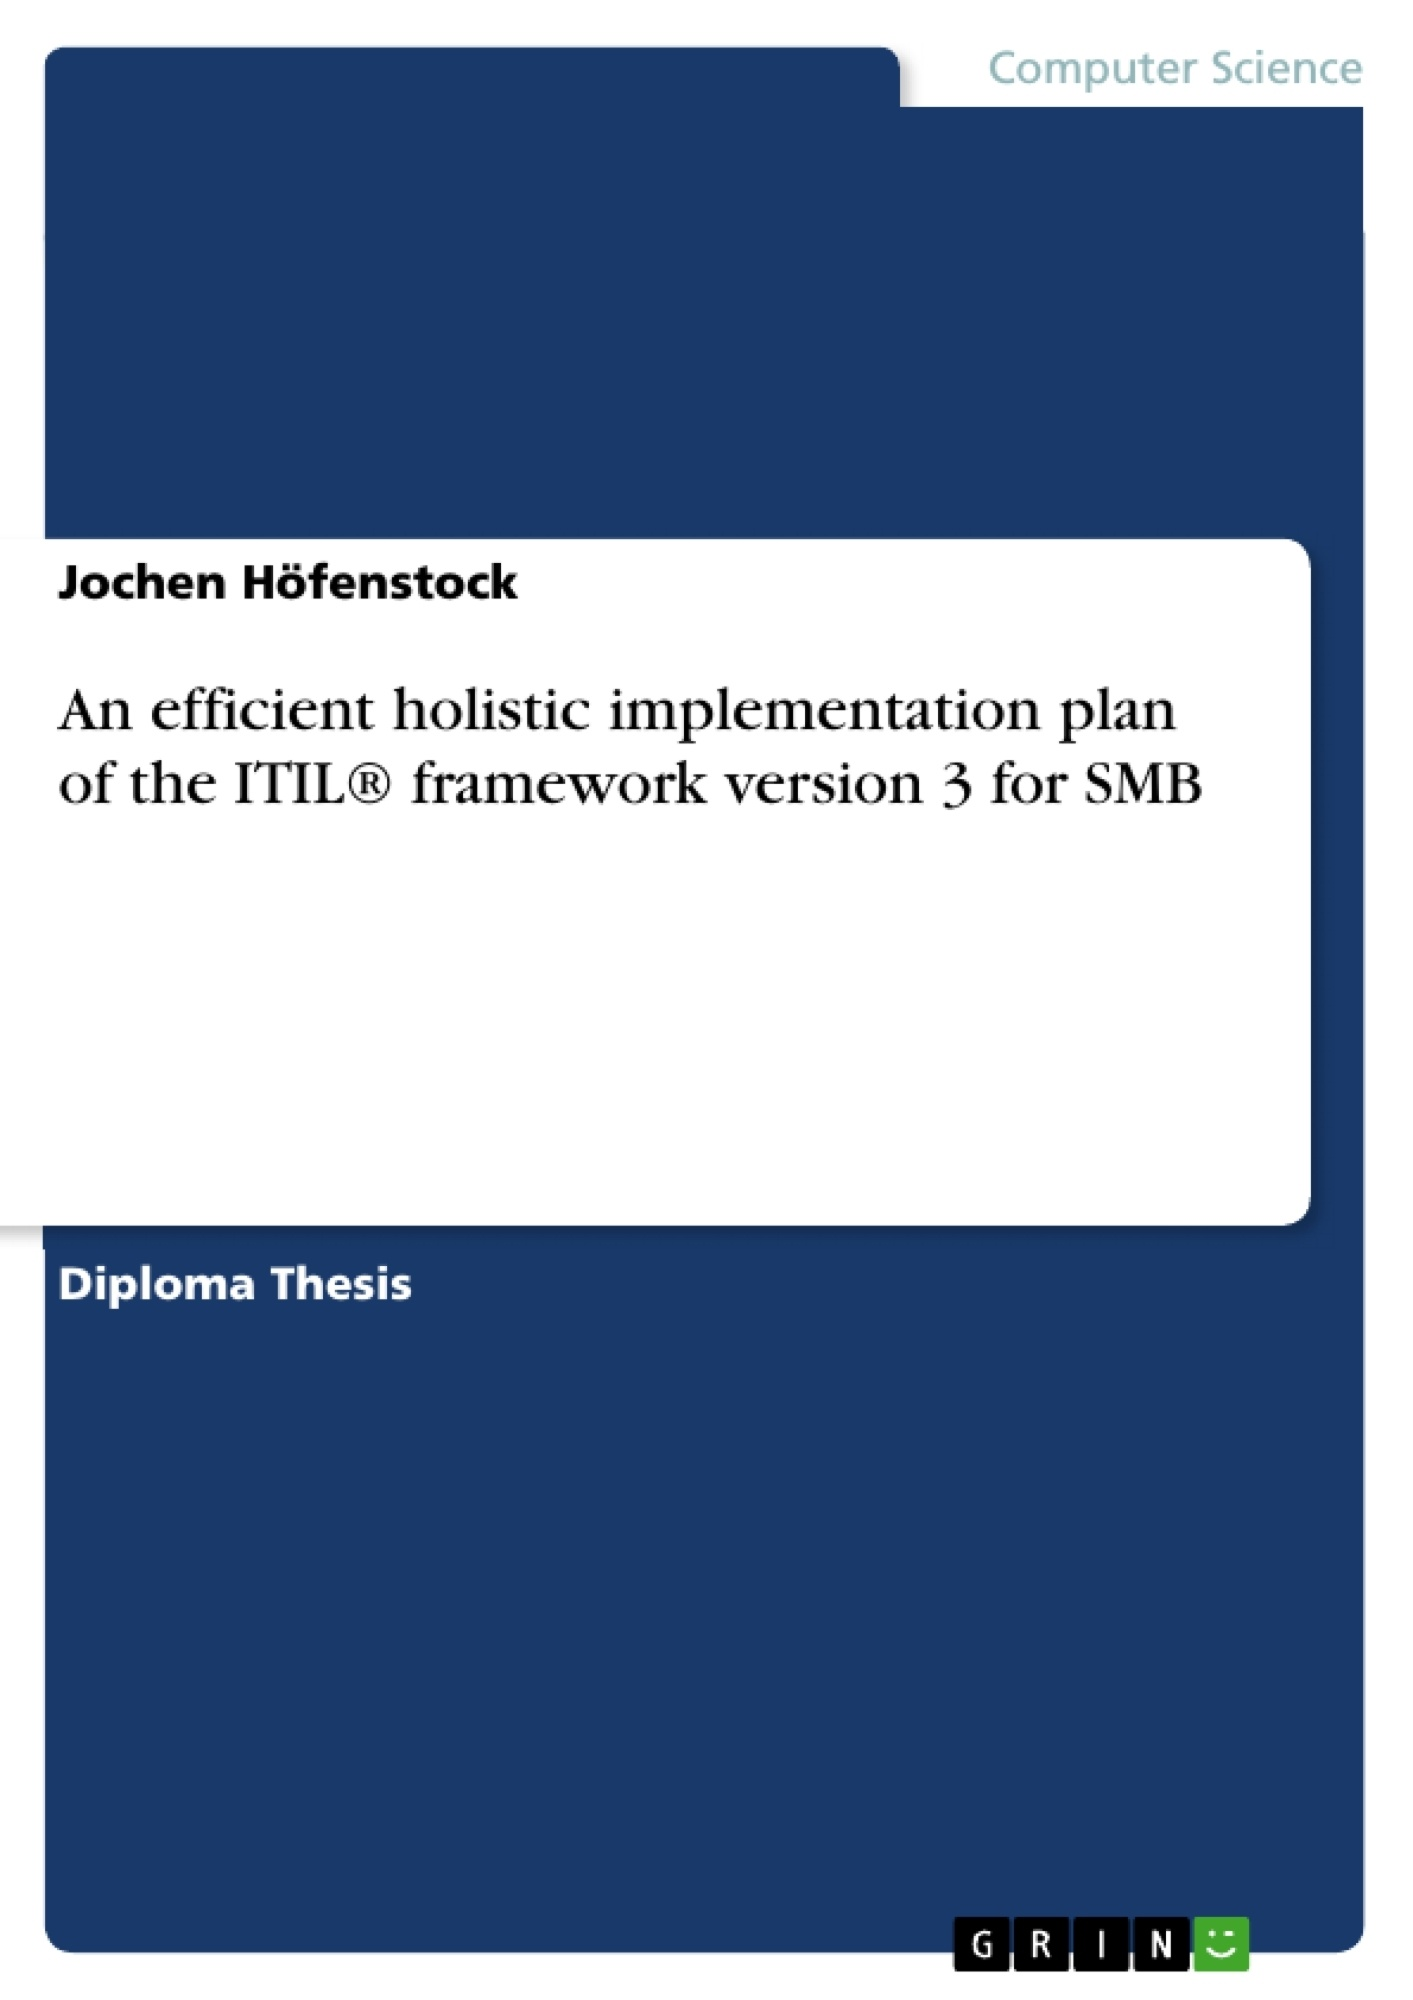 thesis in itil